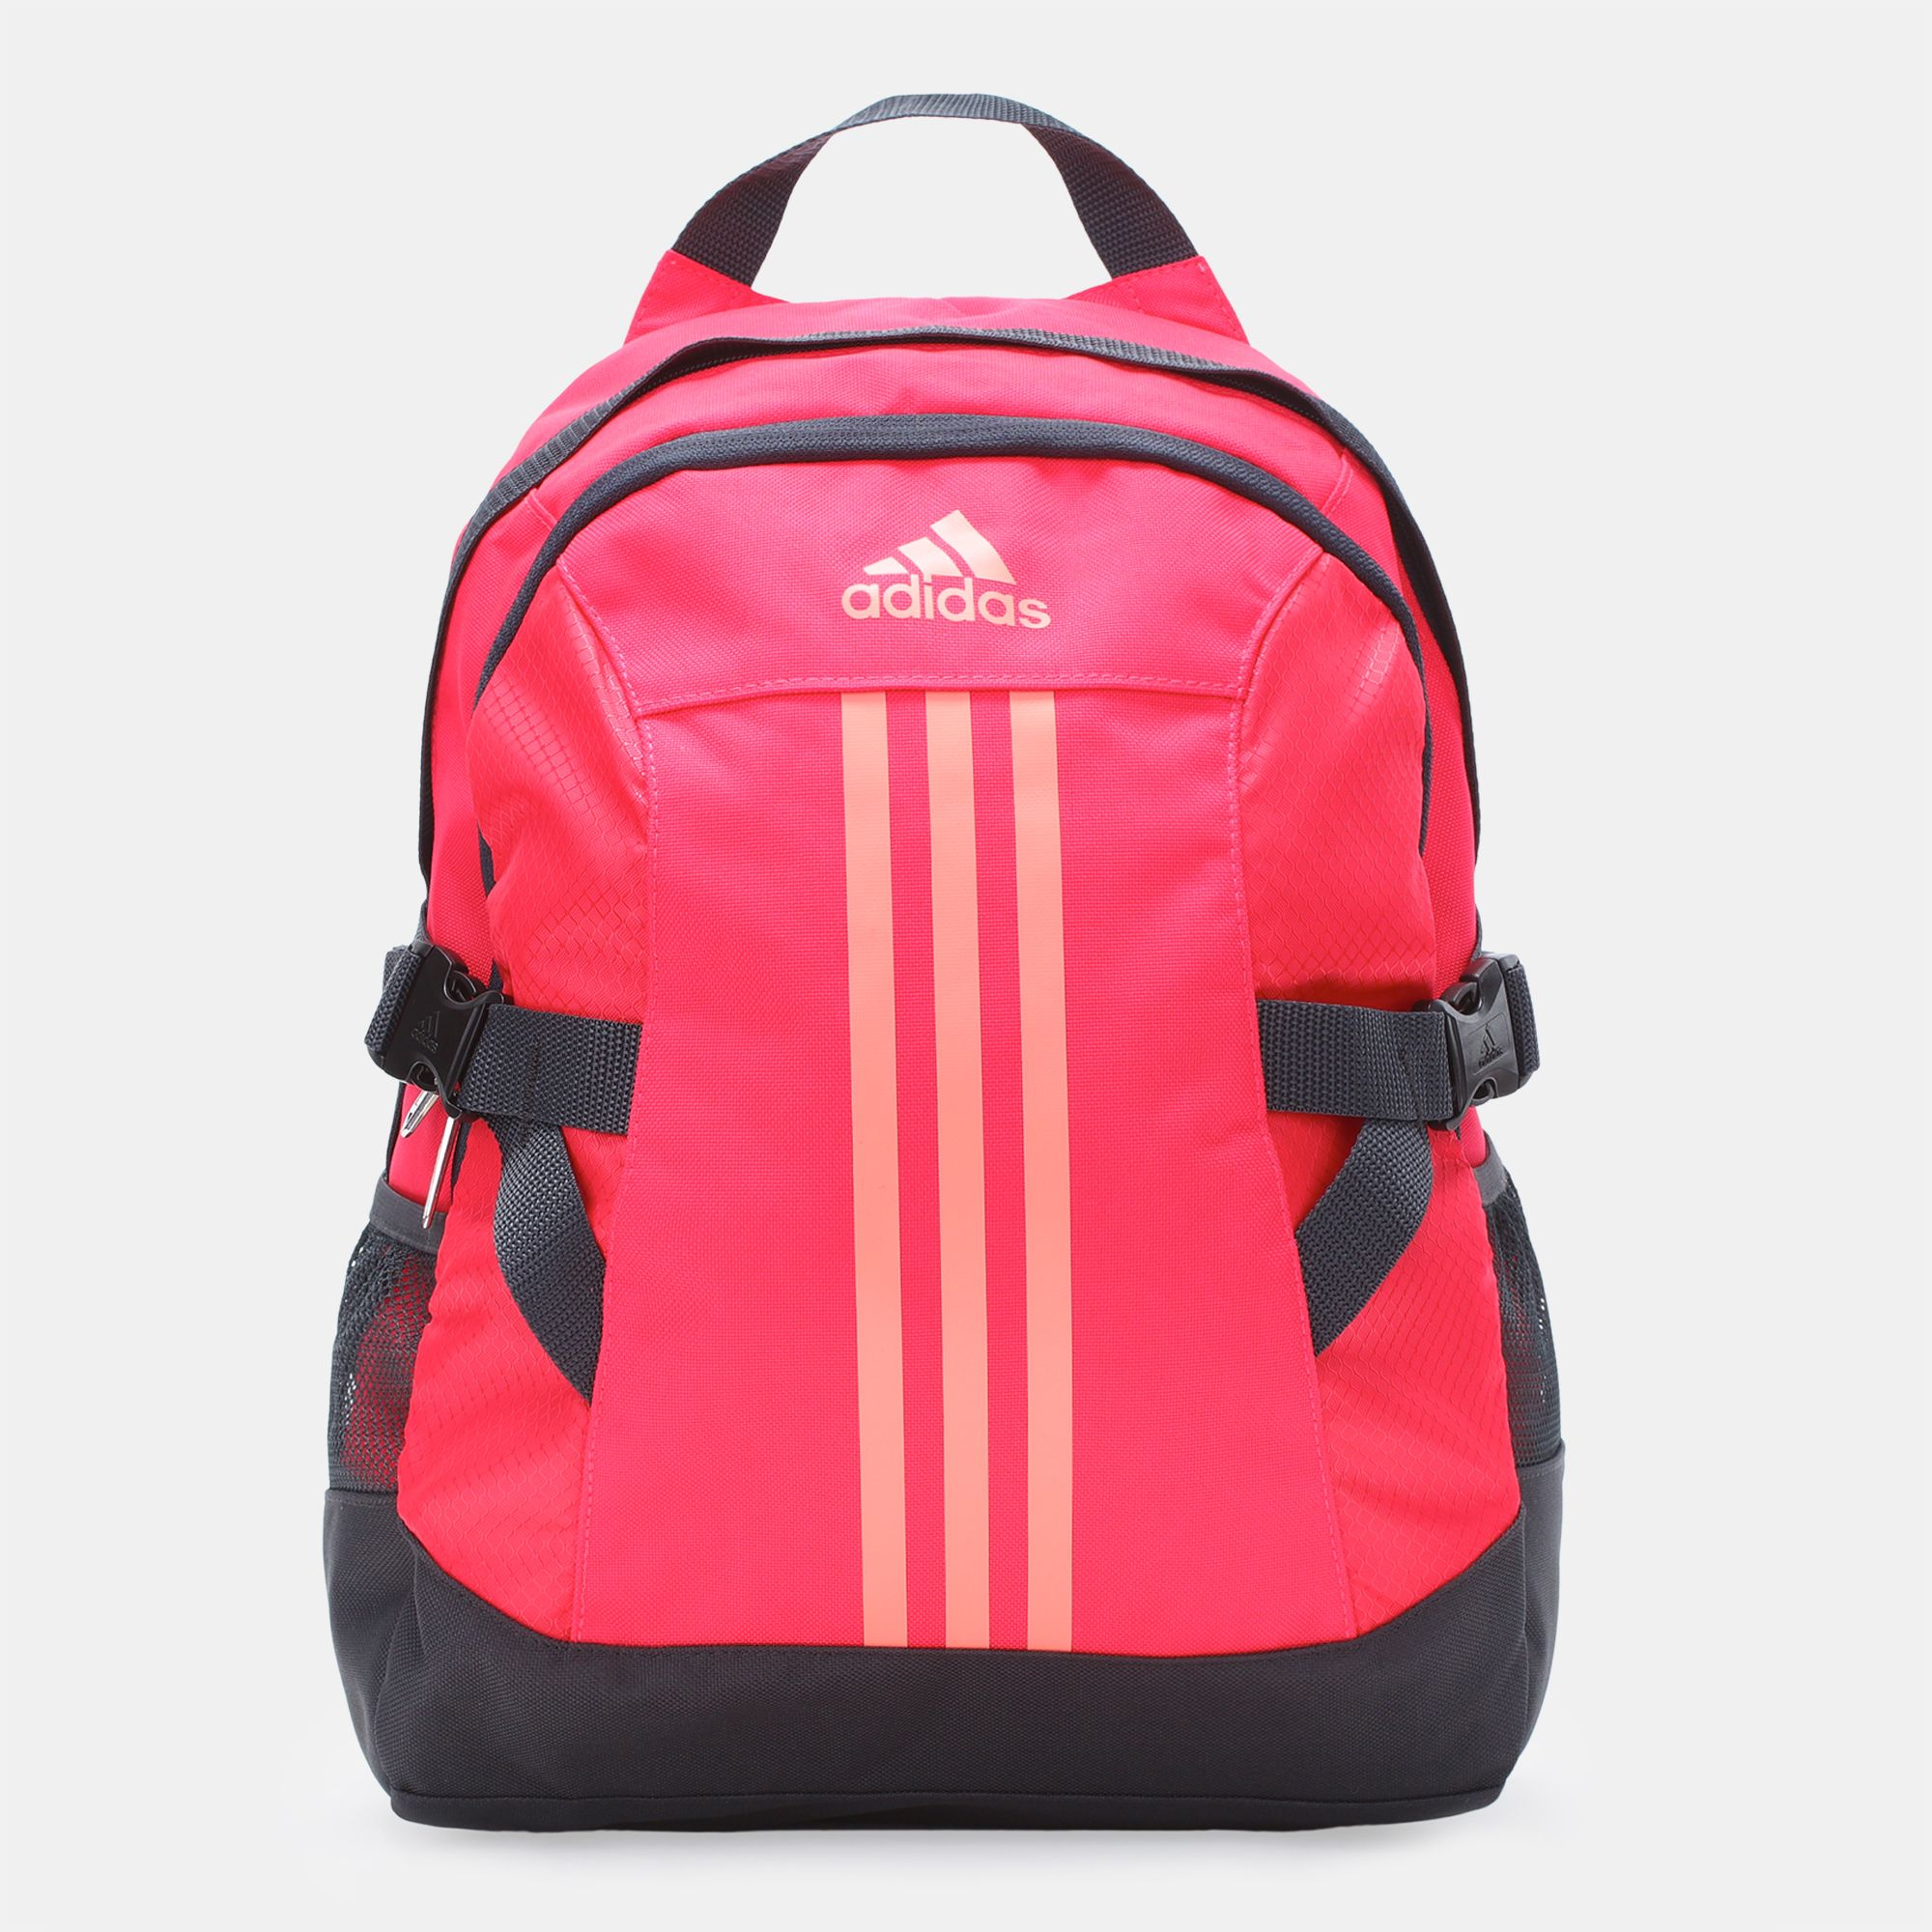 Adidas Red Power Backpack- Fenix Toulouse Handball 2350a4d6fafec